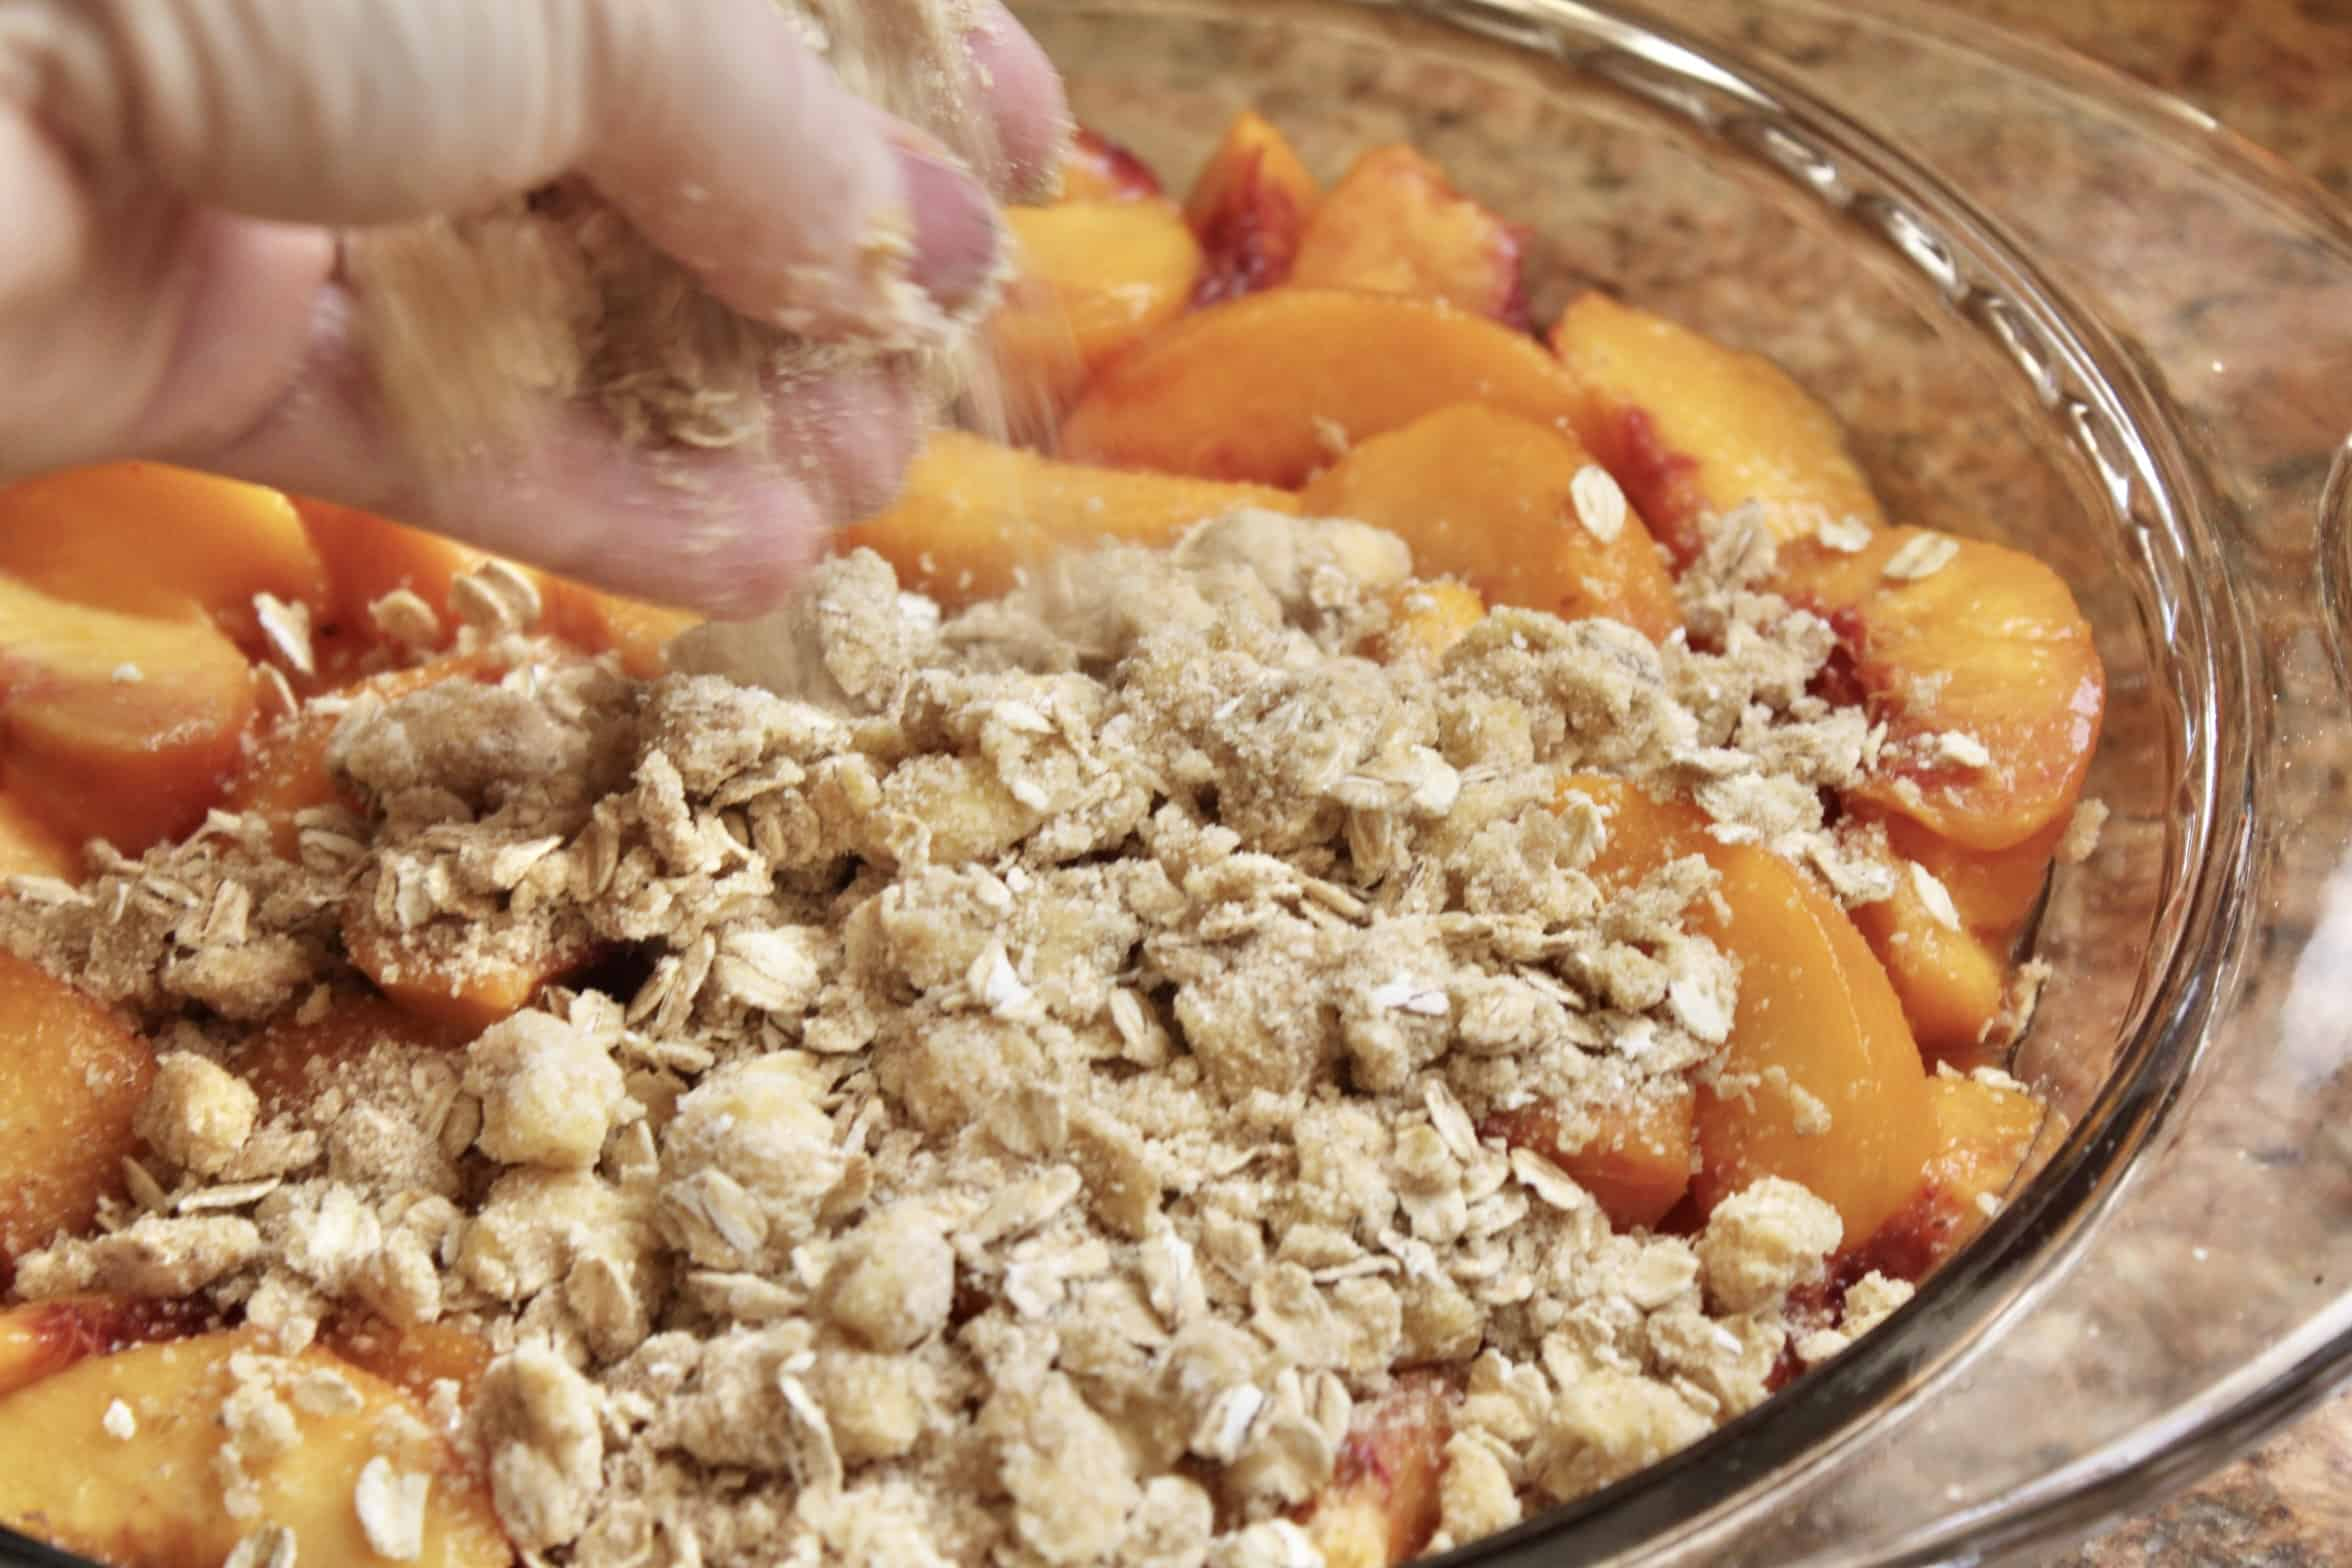 sprinkling crisp topping onto peaches